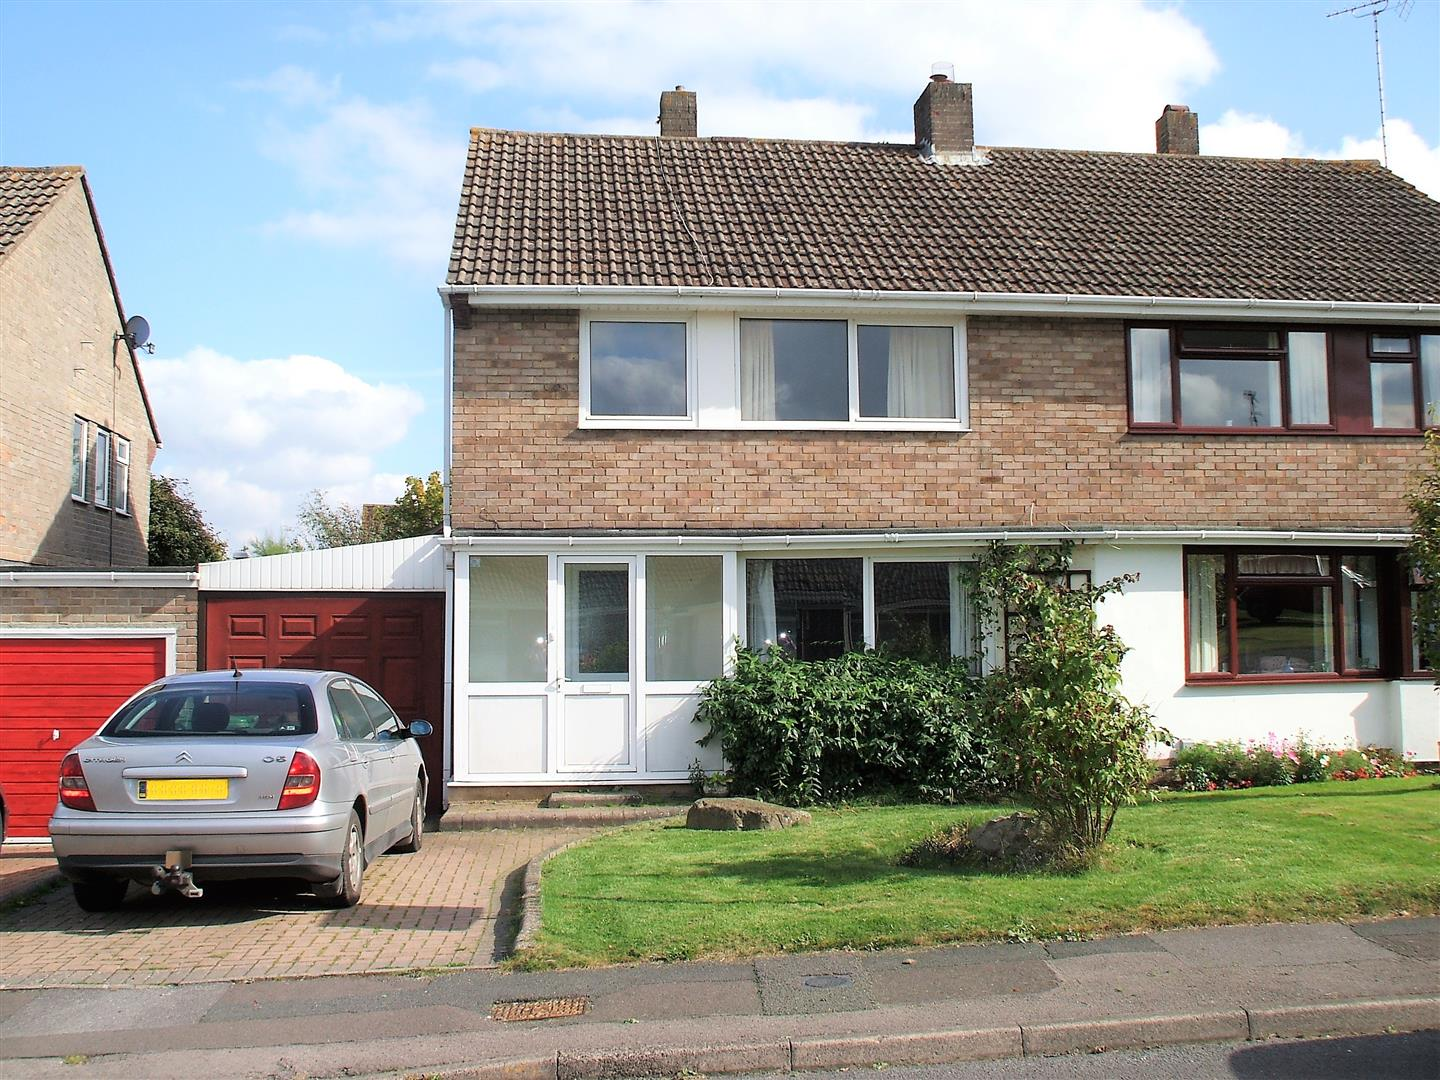 4 Bedrooms Semi Detached House for sale in Noredown Way, Royal Wootton Bassett. SN4